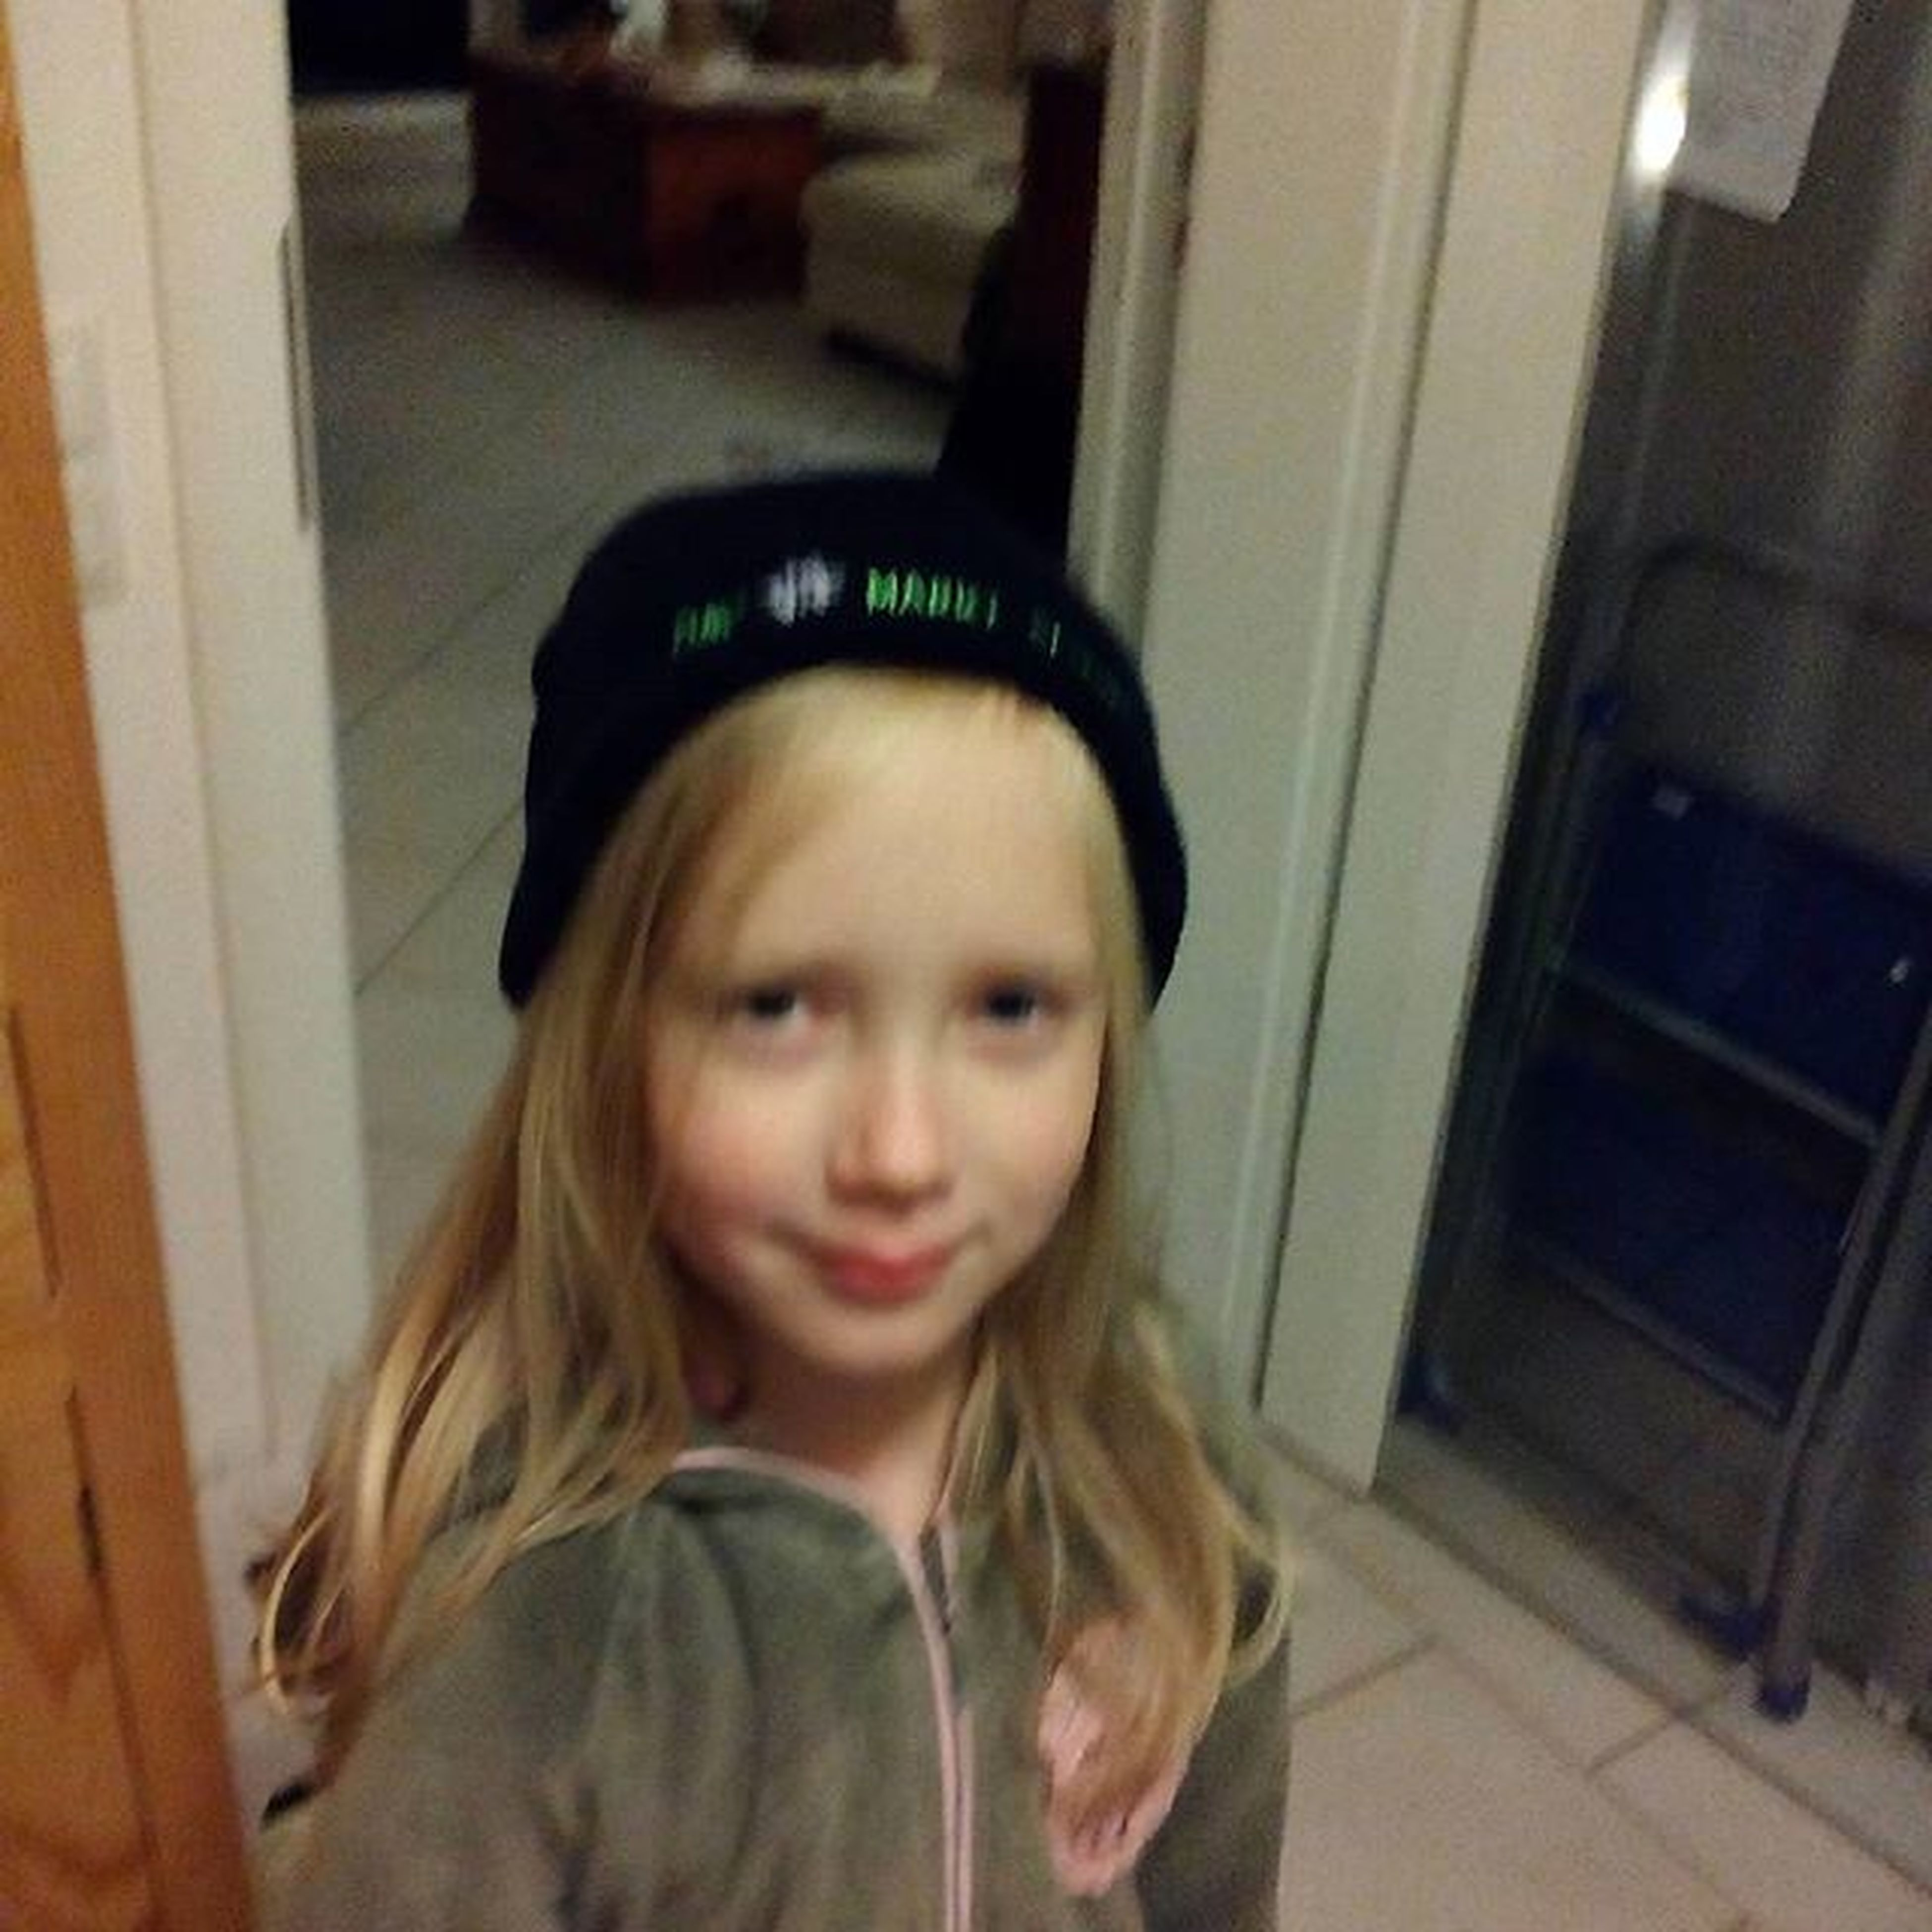 Beanie Beaniepower Littlesister And I have bad photography skills😂😂😂